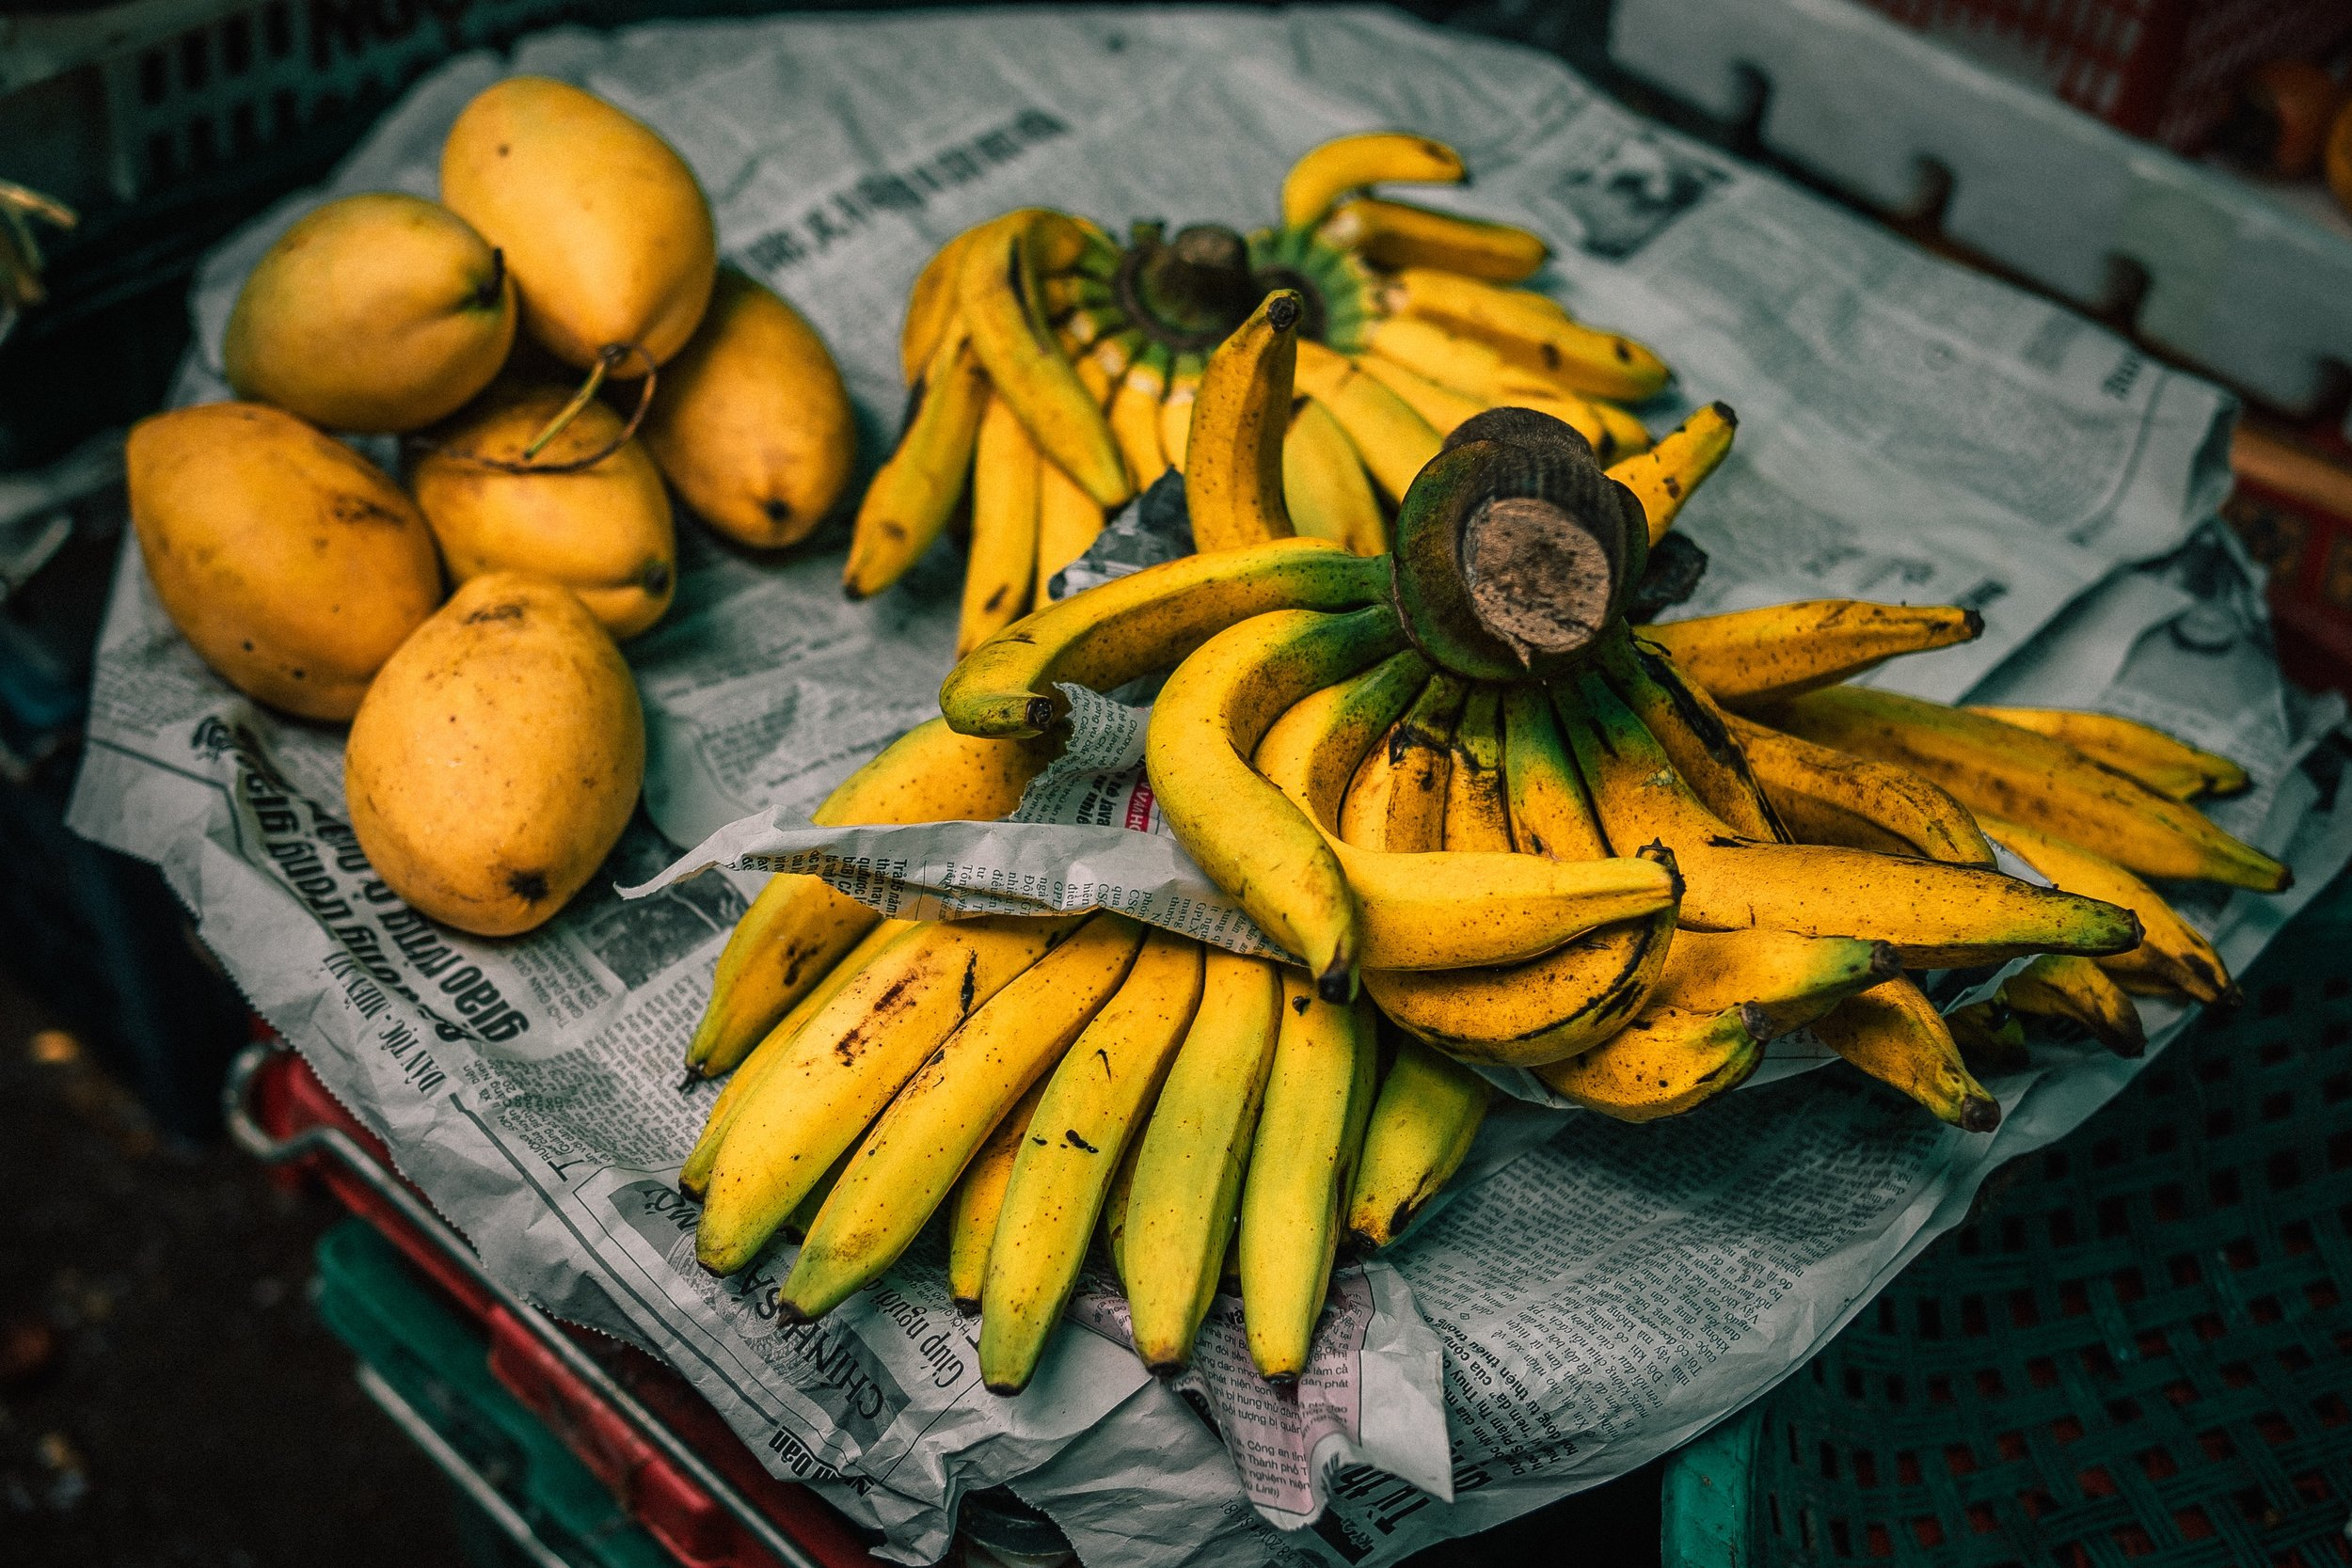 Bananas - The Youth Academy